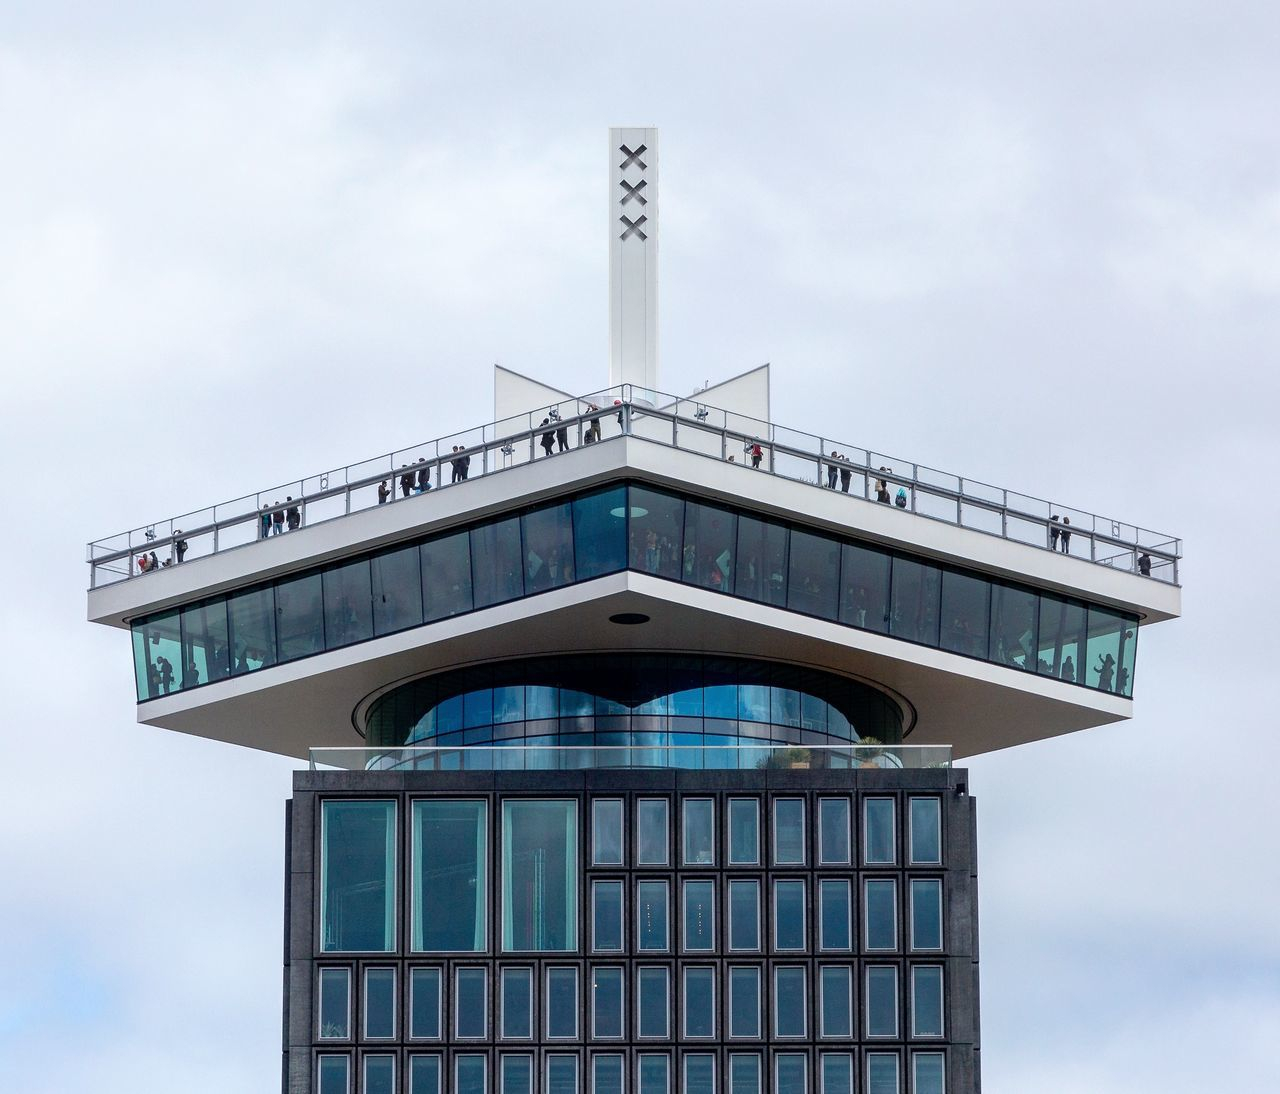 Tower Architecture Building Exterior Sky Built Structure Cloud - Sky Outdoors No People Day Business Finance And Industry Travel Destinations Modern City Politics And Government Amsterdamcity Amsterdam